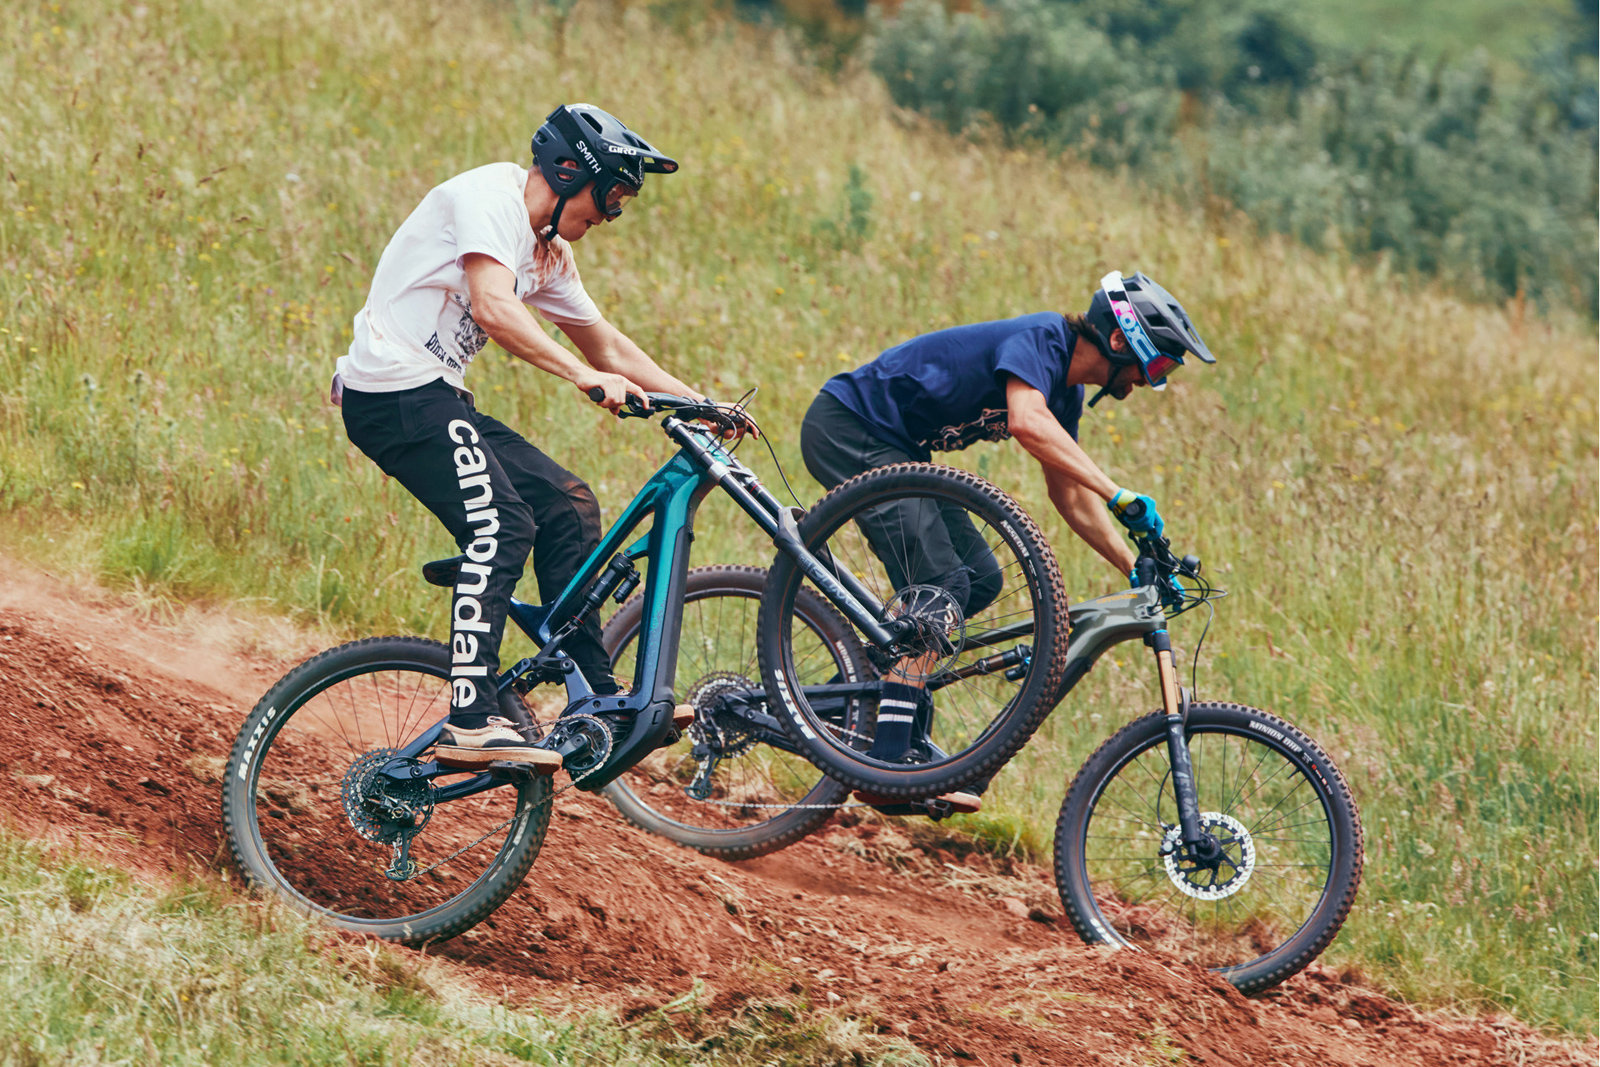 trek-vs-specialized-mountain-bikes